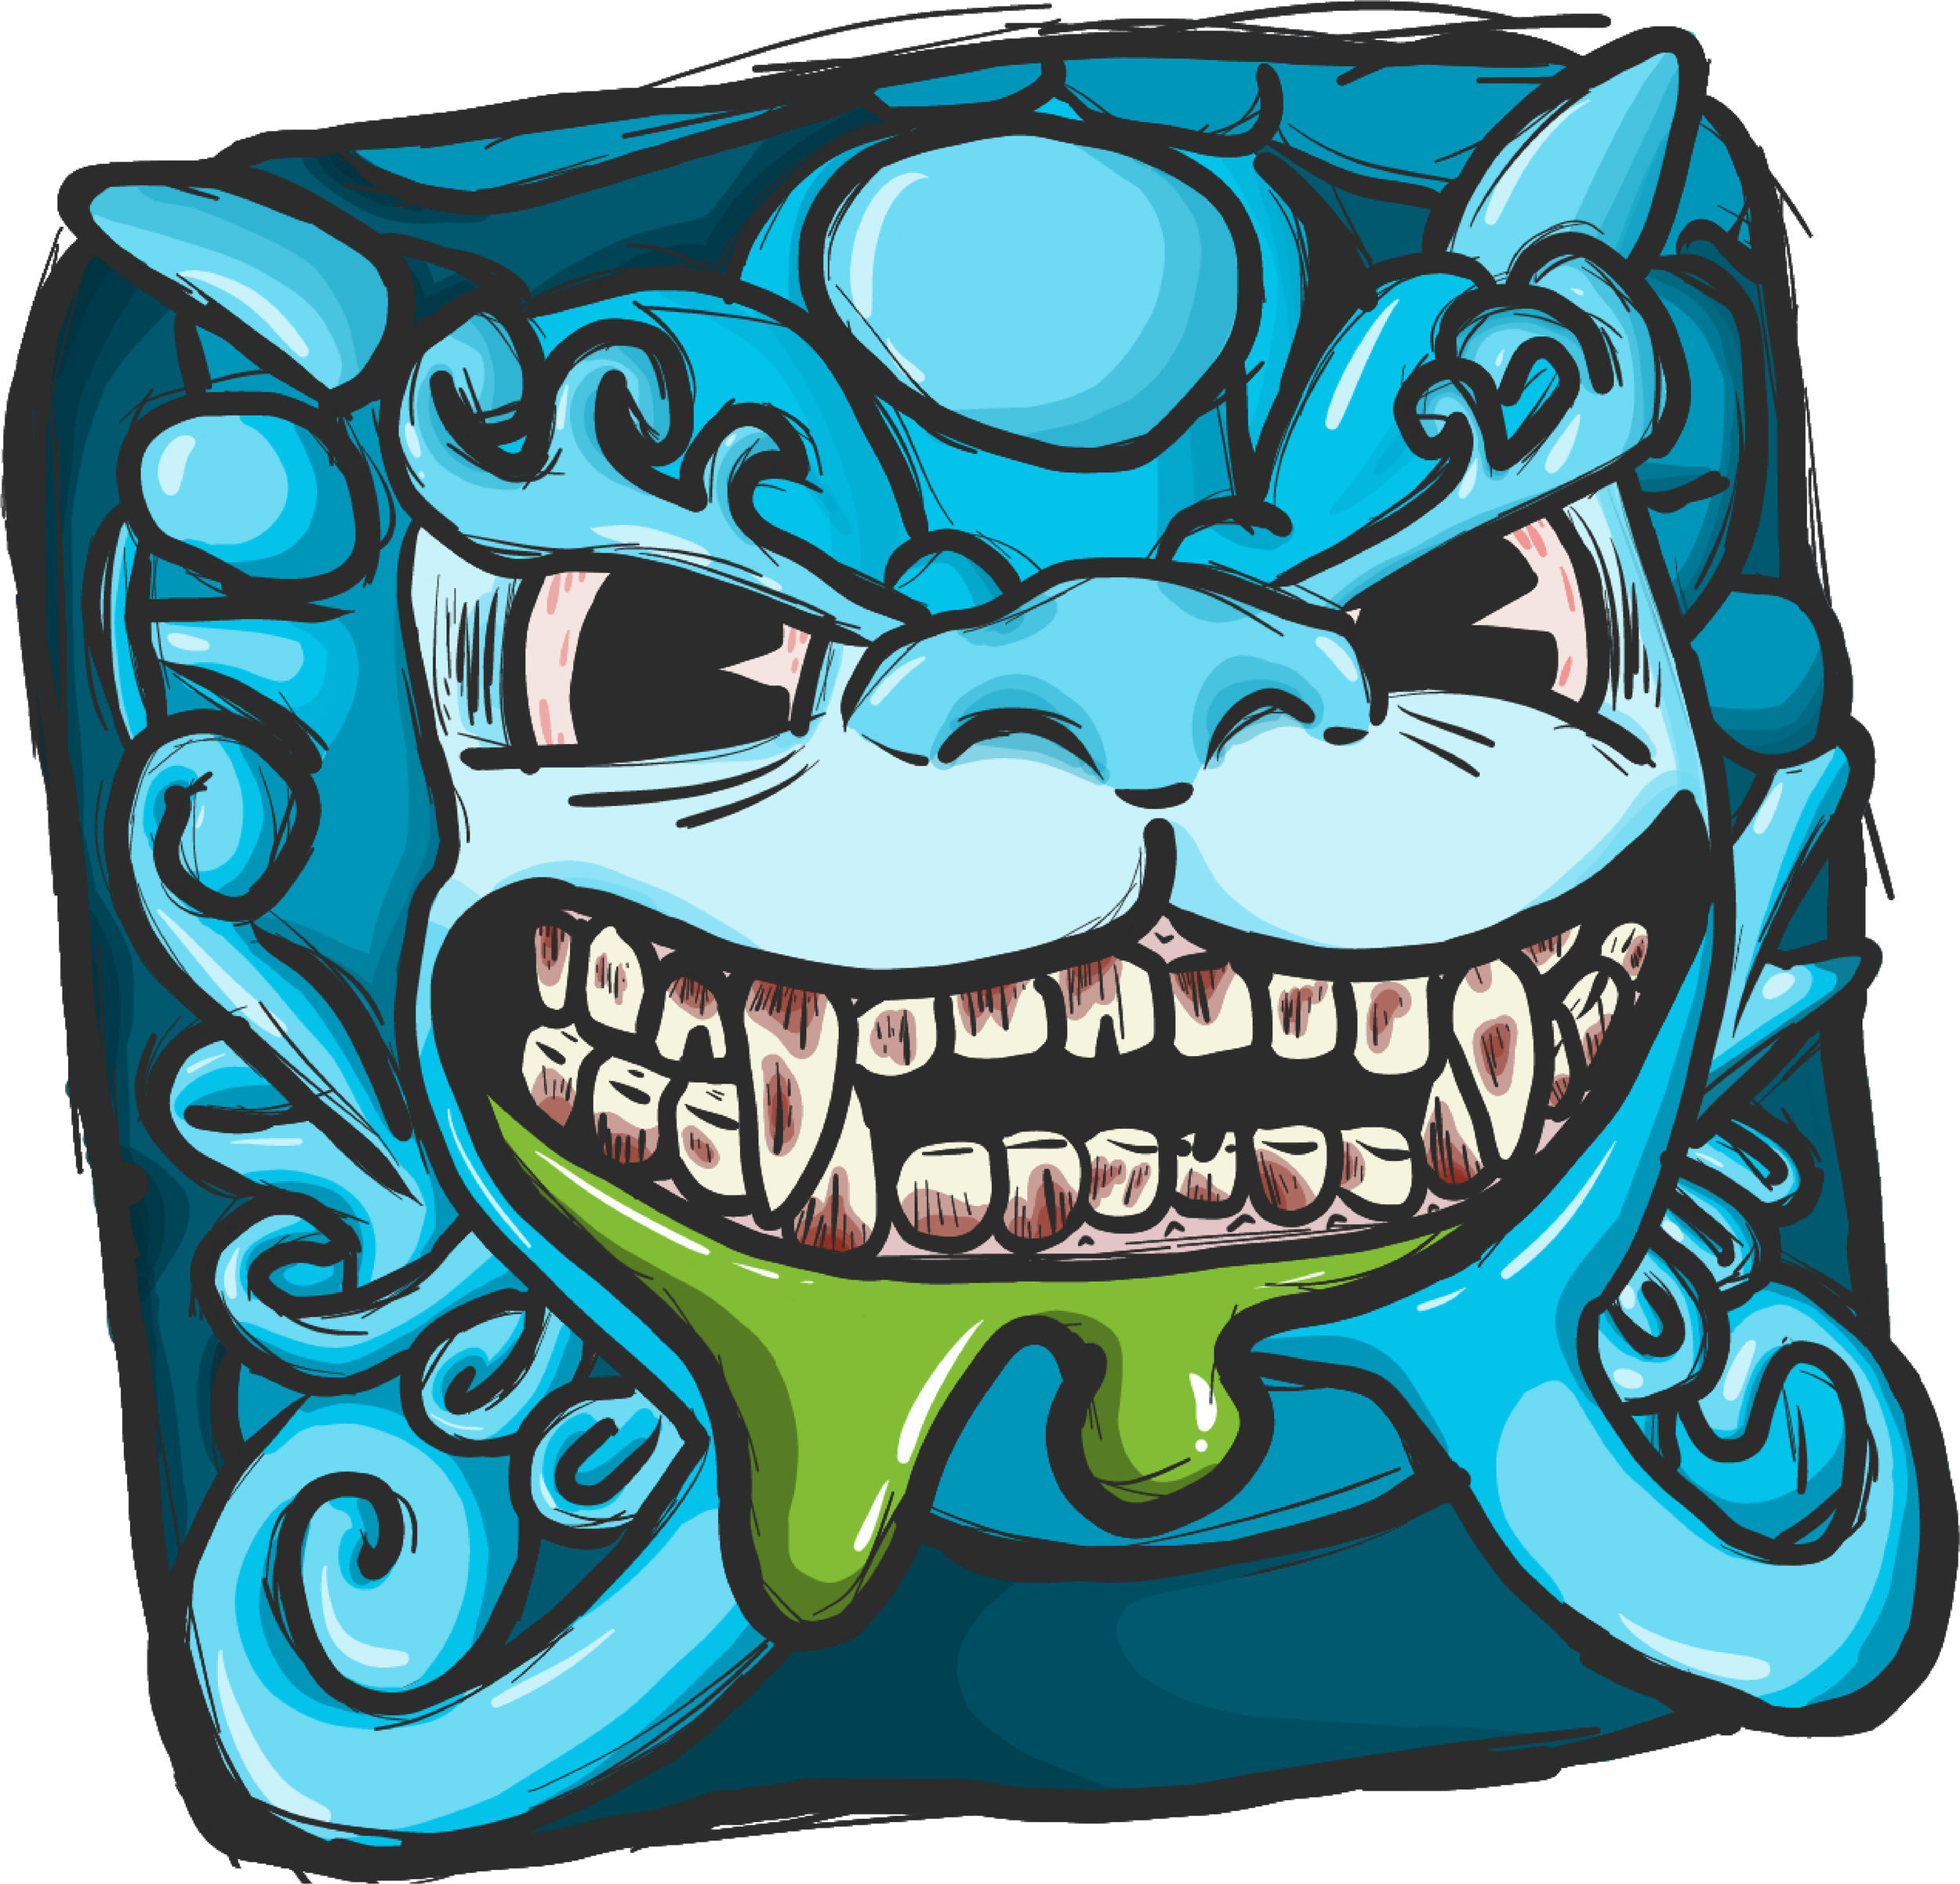 Shishi sticker, drawn by an awesome member of the community. These have been made into stickers and will be included in Fulfillment Sale packages. In the future I will be selecting more artwork submitted by the community for sticker production, so submit your entries to support@keyforge.com